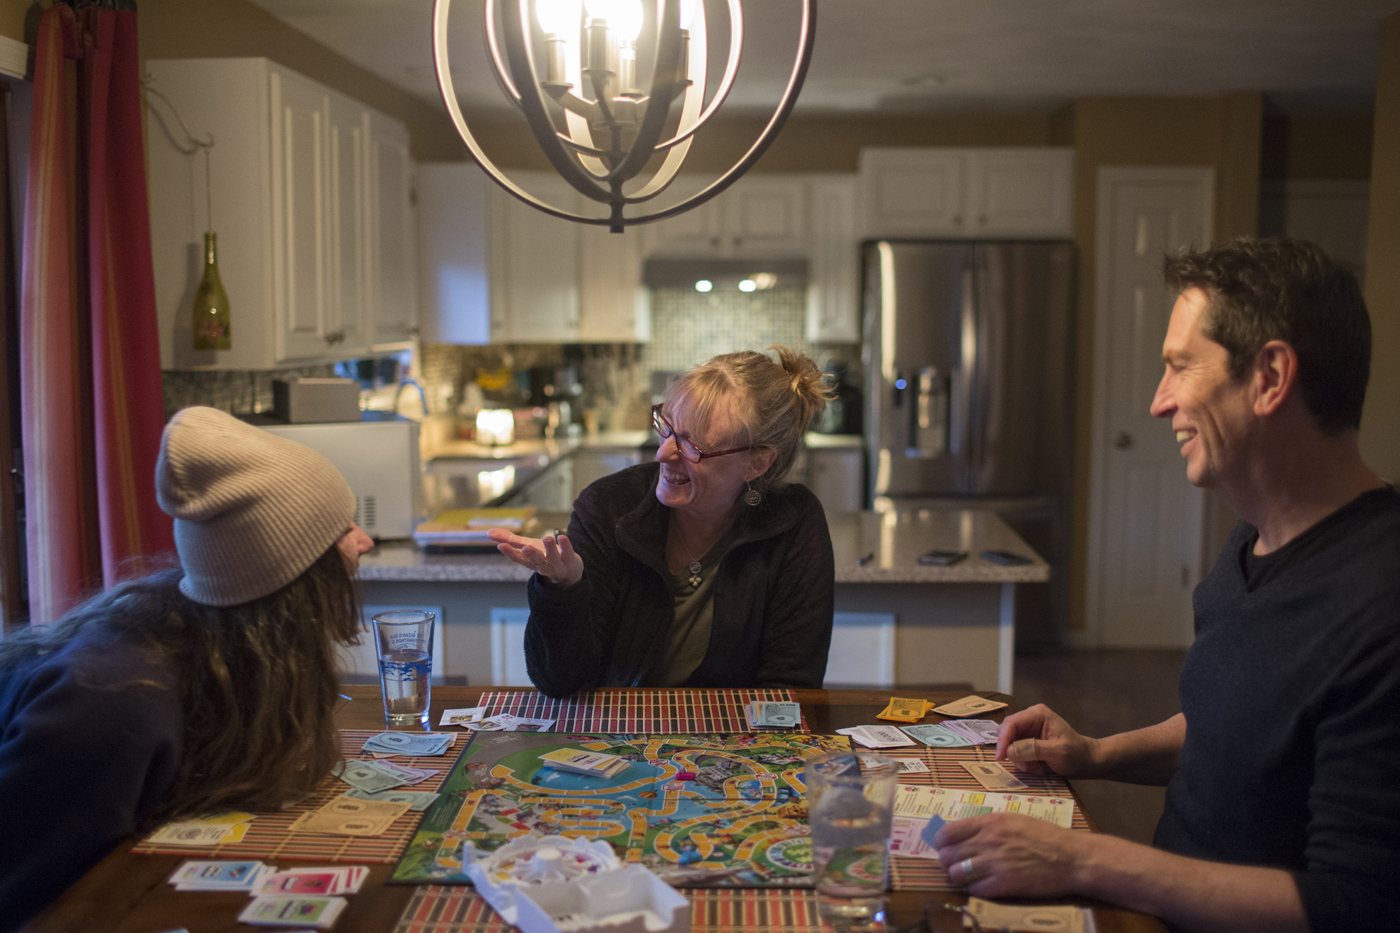 Faith, her daughter, and husband laugh as they play a board game in the kitchen.